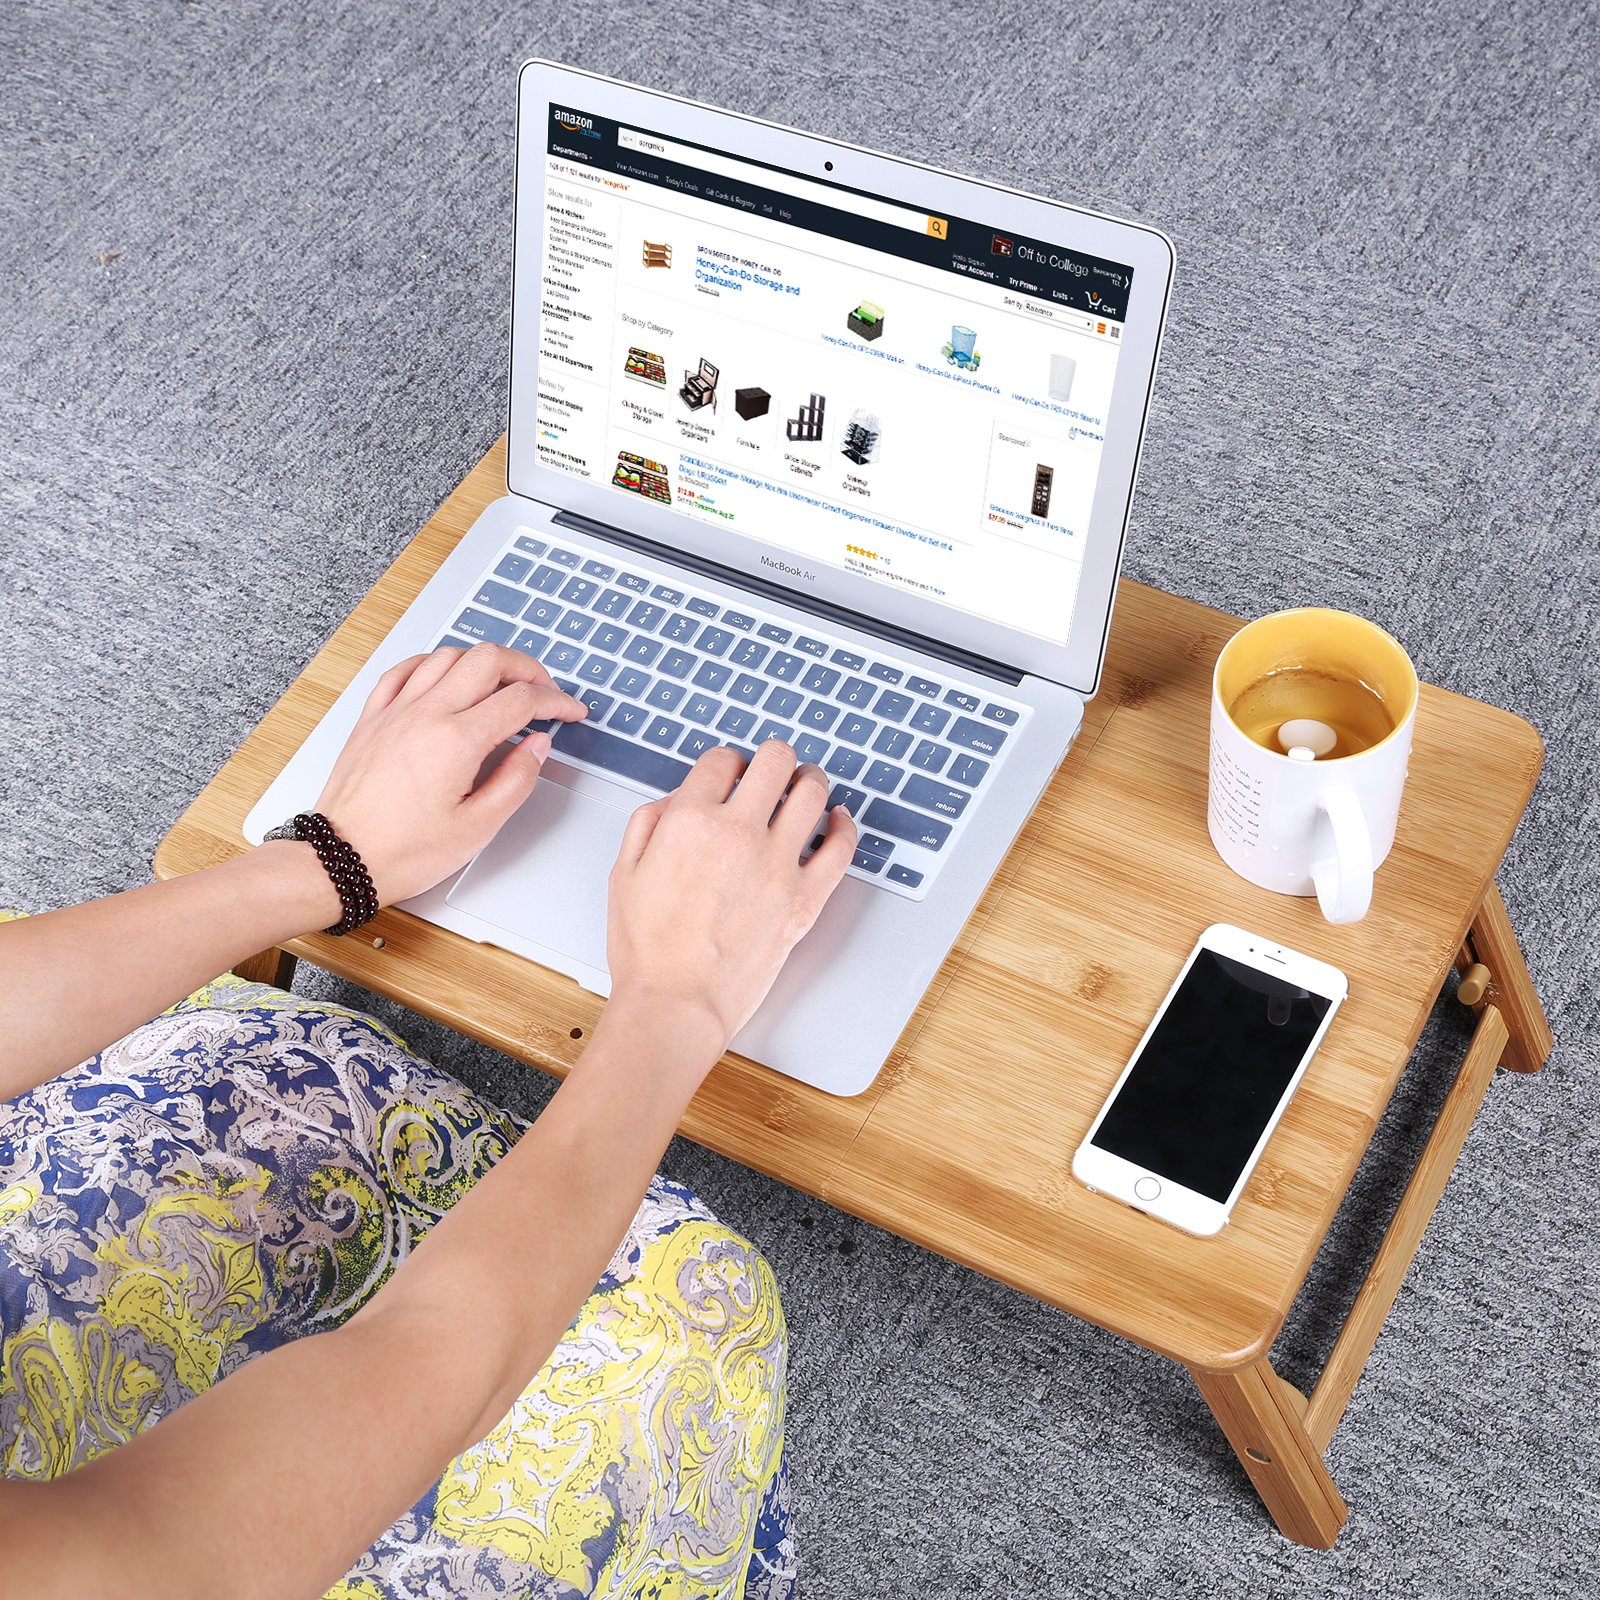 SONGMICS Bamboo Laptop Desk Serving Bed Tray Tilting Top ULLD001 by SONGMICS (Image #2)